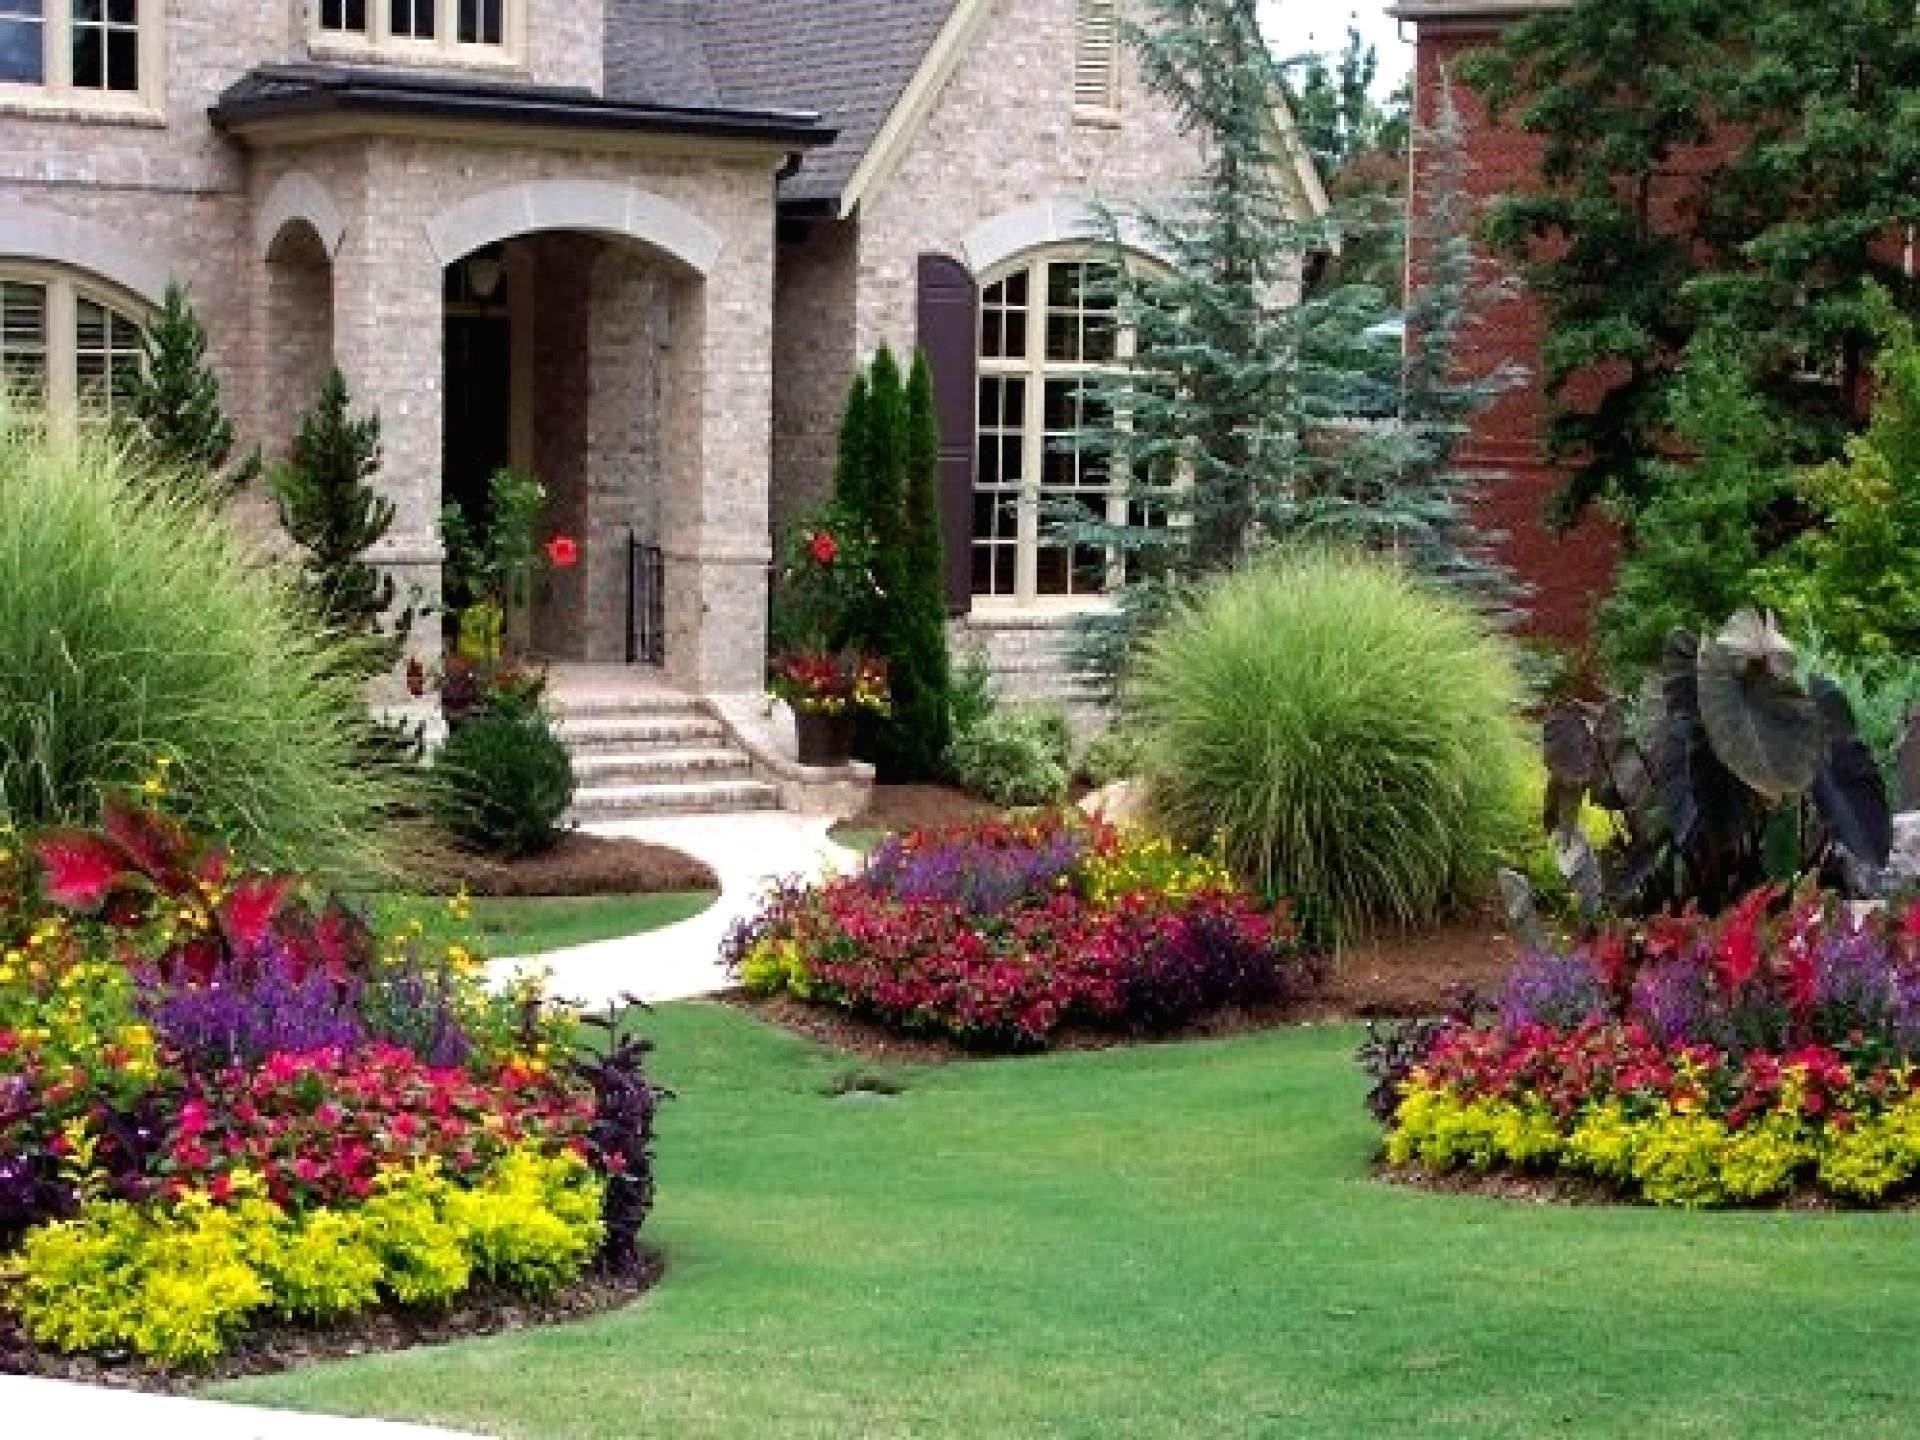 10 Stunning Landscaping Ideas Front Of House landscaping design ideas for front of house internetunblock from 2020